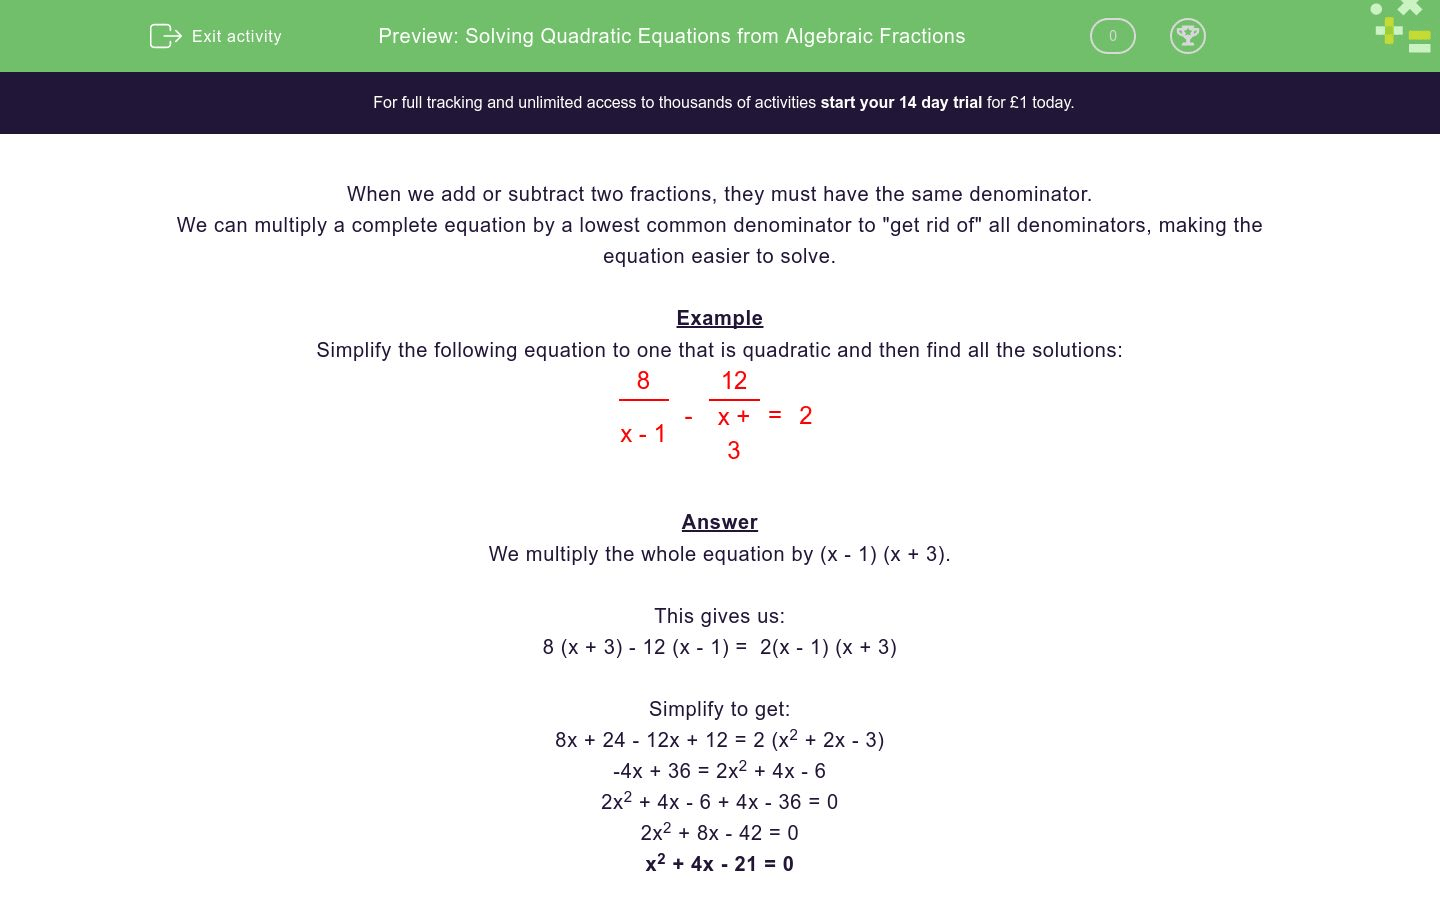 Solving Quadratic Equations From Algebraic Fractions